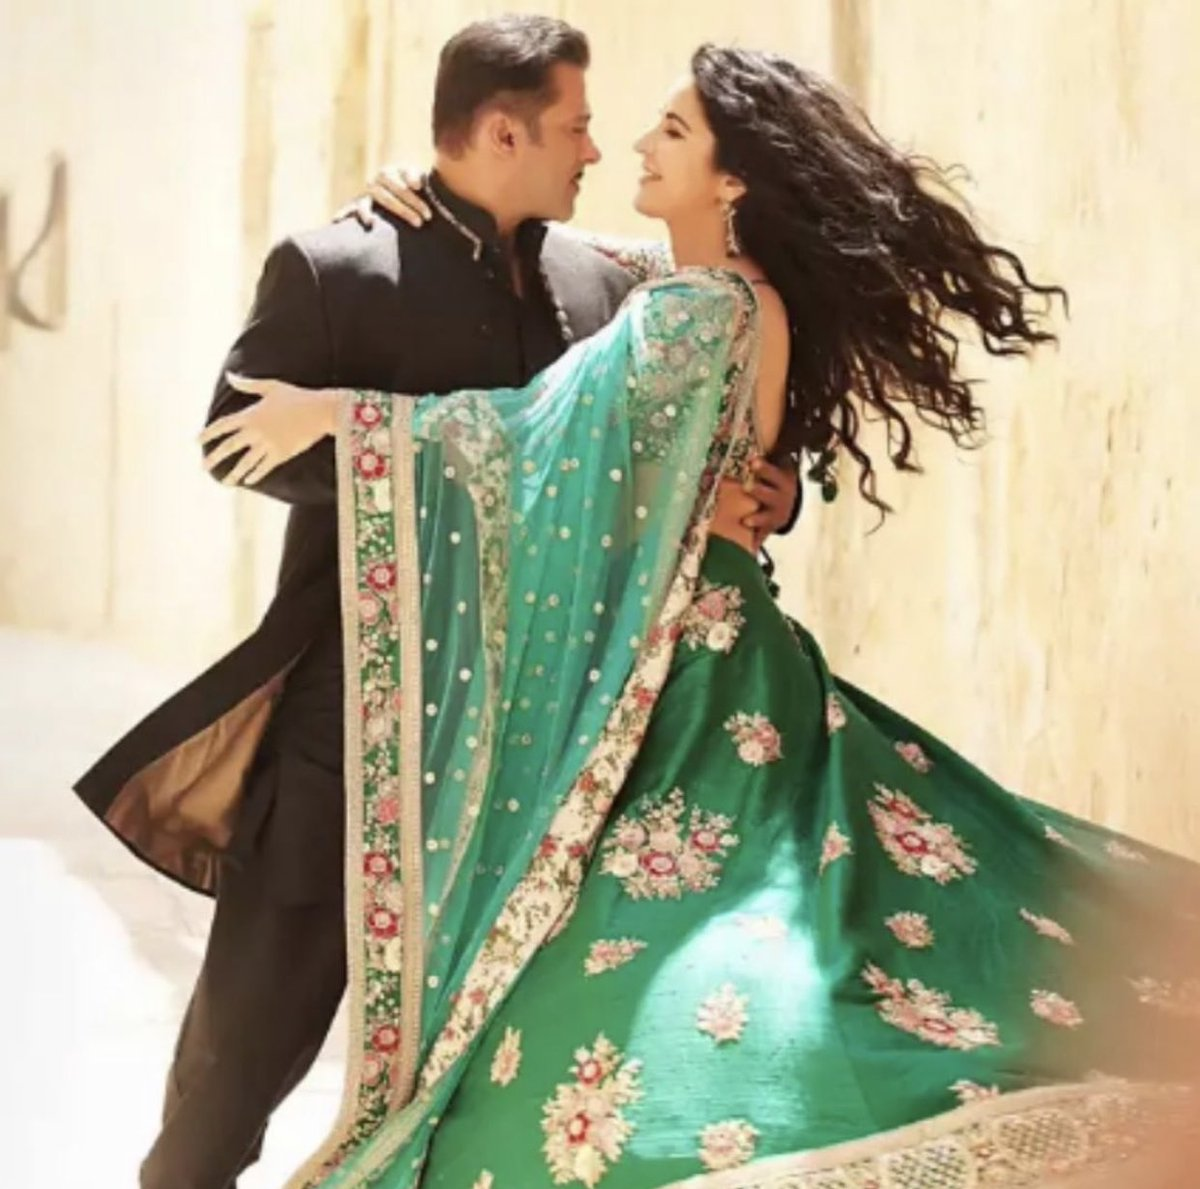 The first teaser of #Bharat will reportedly be released on January 26 2019.